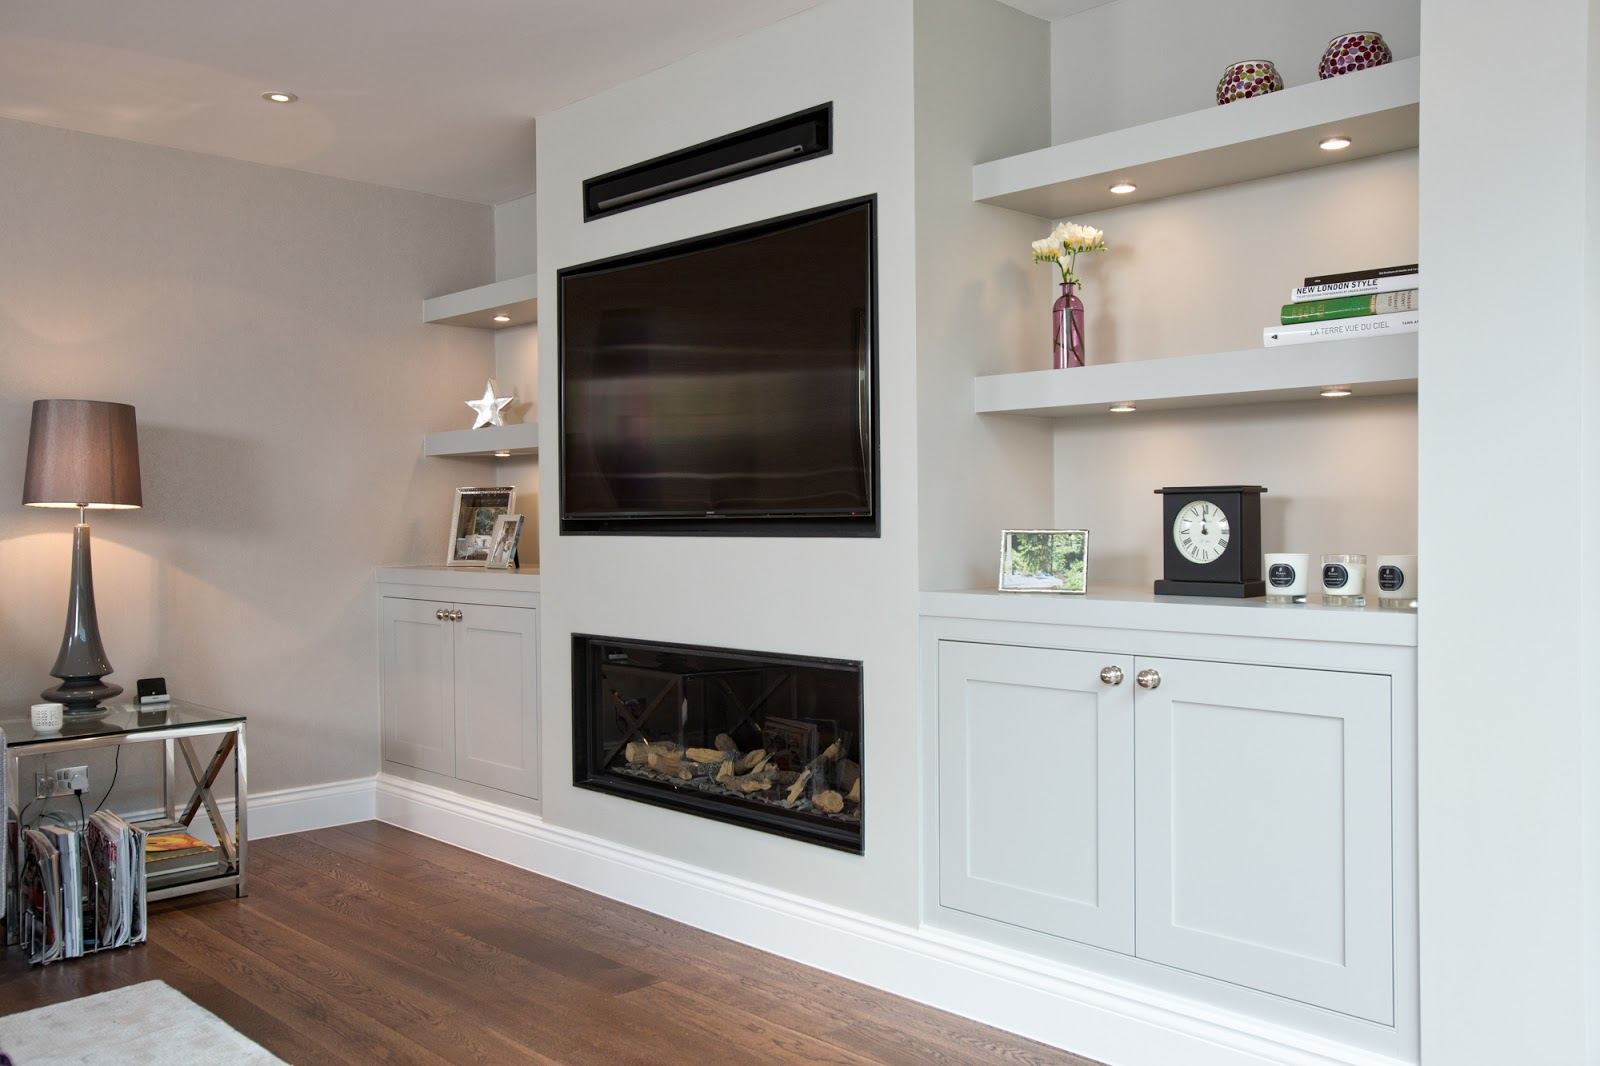 how to use shims to level furniture